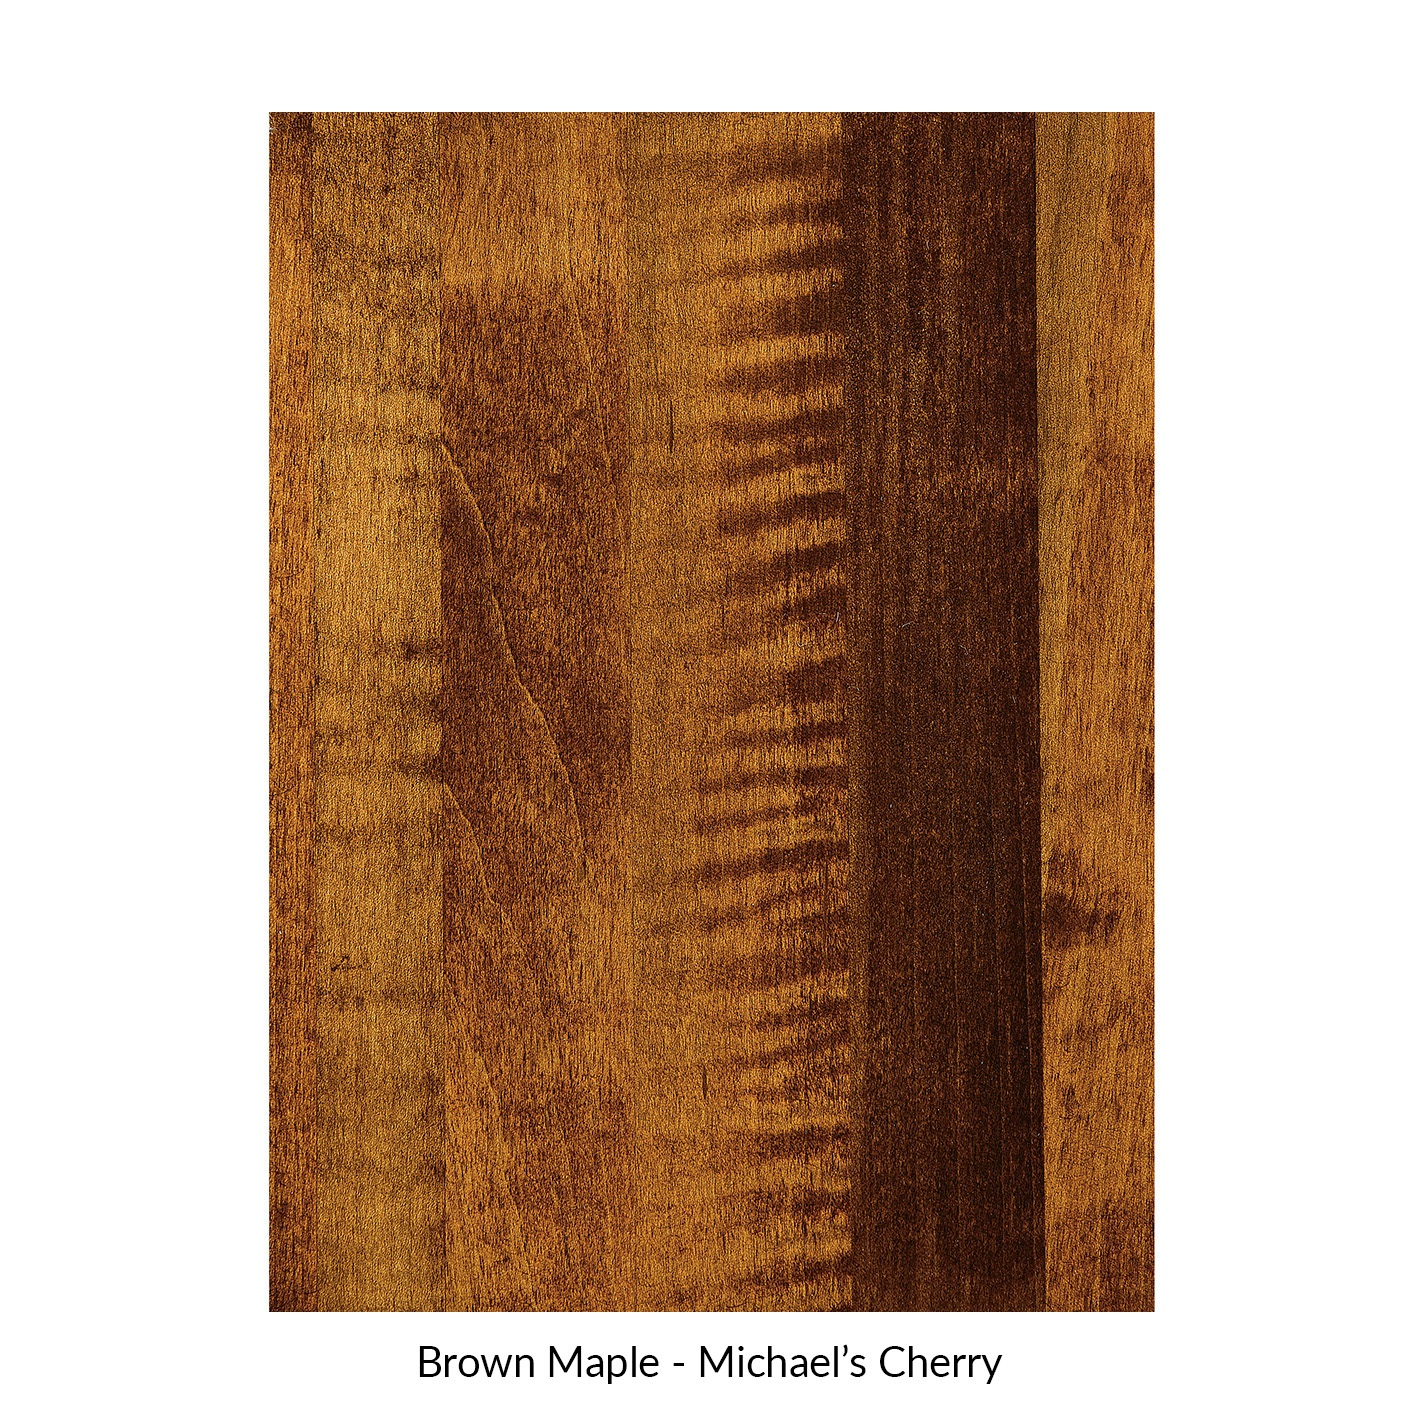 spectrum-brown-maple-michaels-cherry.jpg